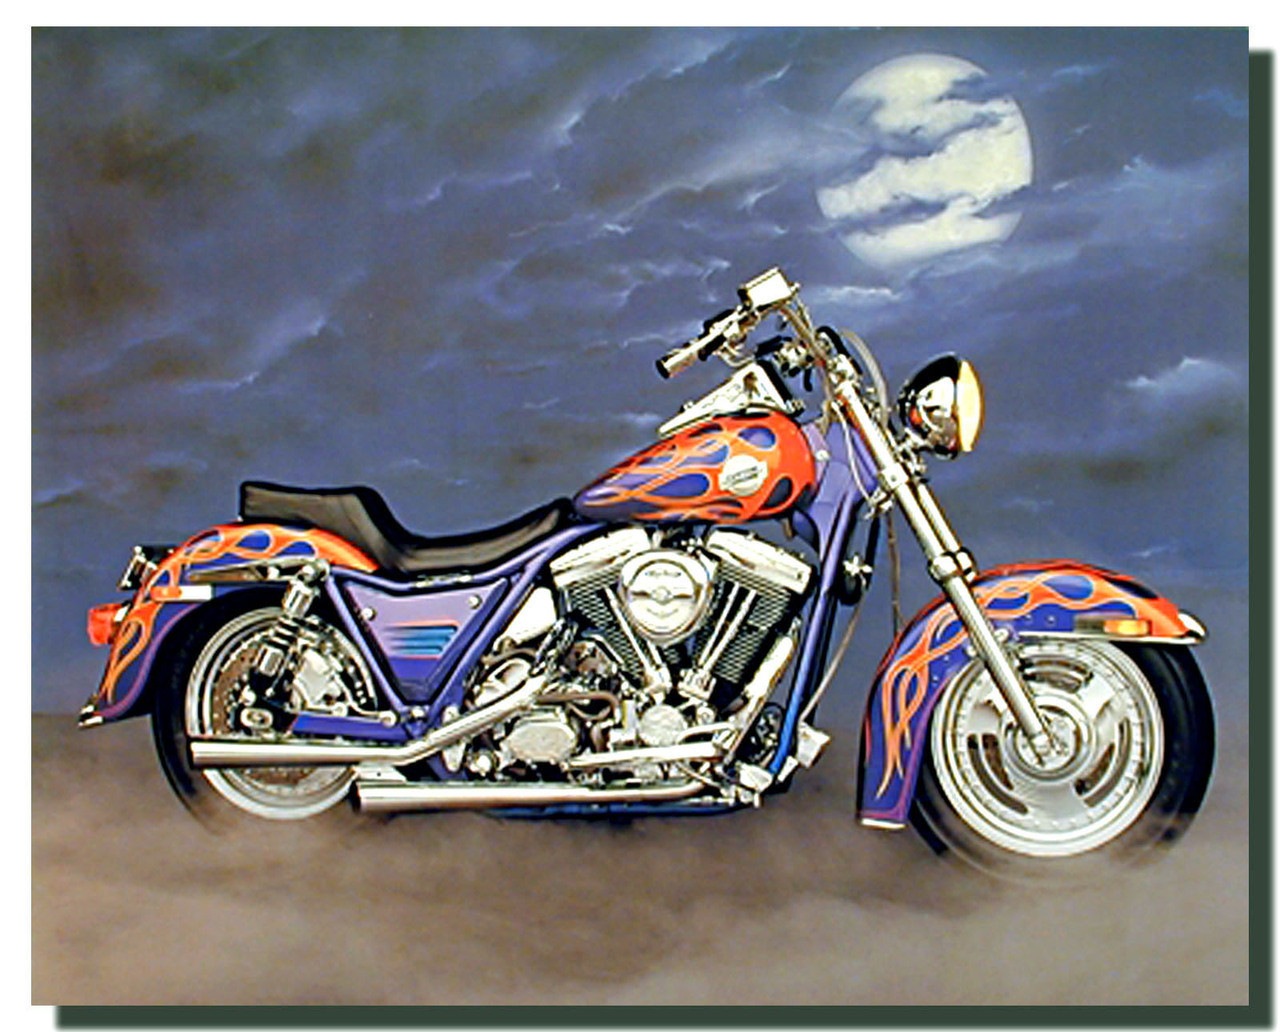 1986 FXR Harley Motorcycle Poster | Motorcycle Posters